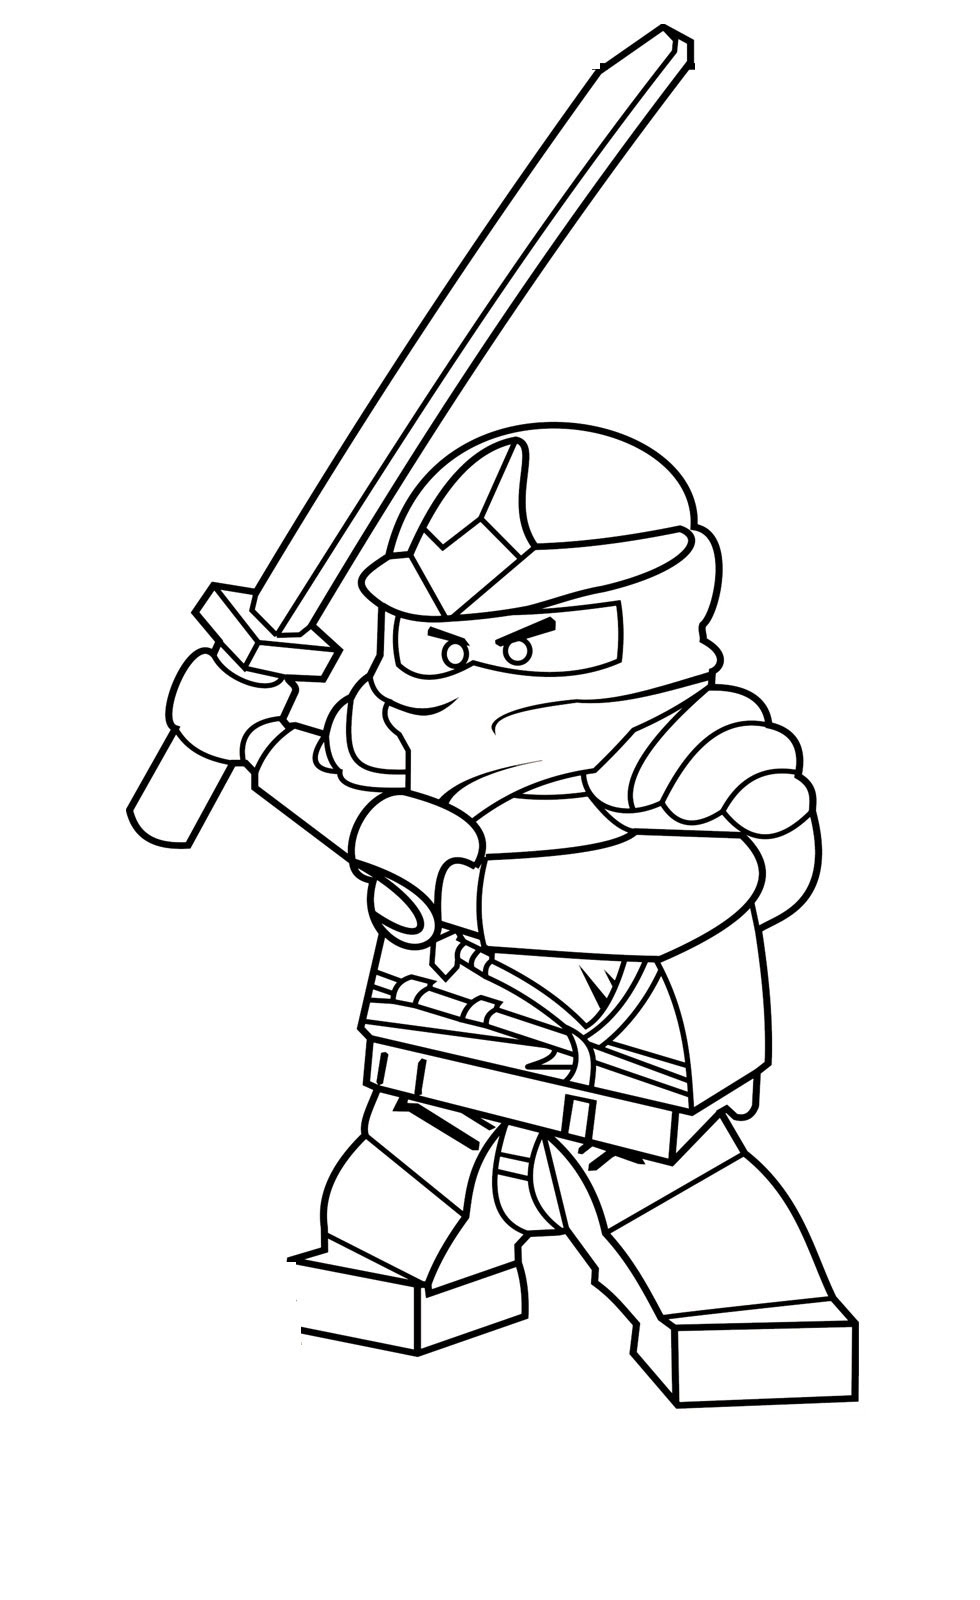 printable ninjago coloring pages free coloring pages of ninjago malvorlagen